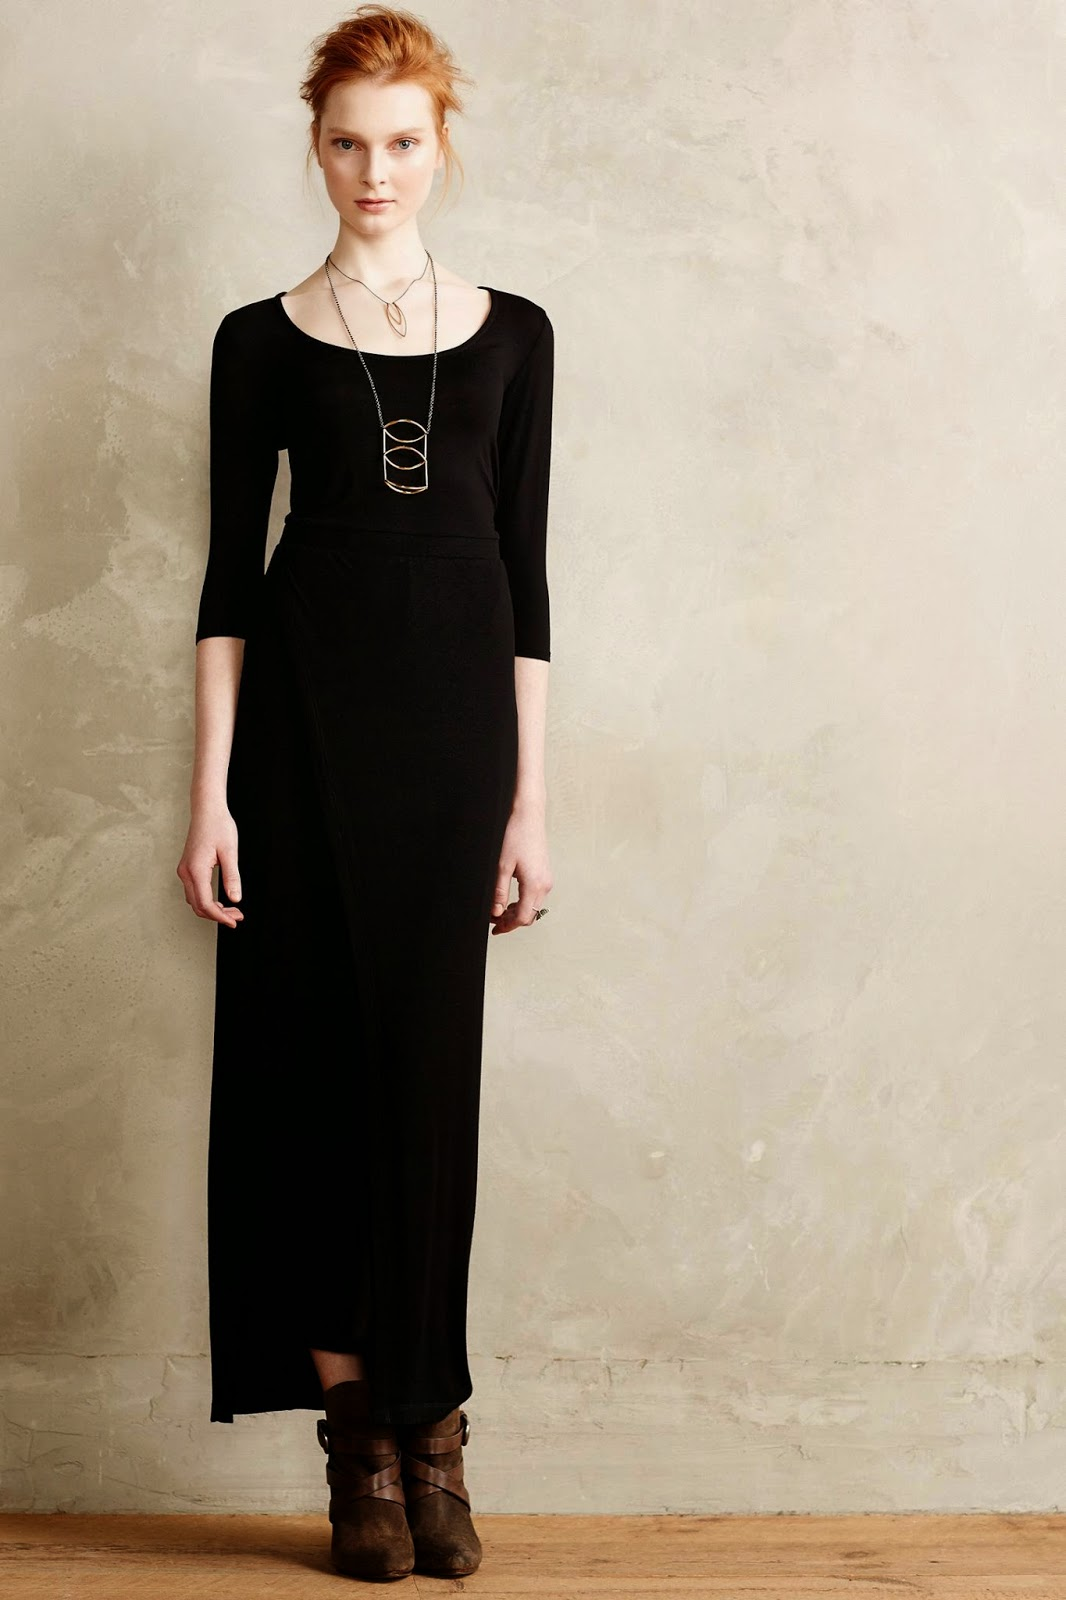 Modest black maxi dress with sleeves | Follow Mode-sty for stylish modest clothing #nolayering tznius orthodox jewish muslim hijab mormon lds pentecostal islamic evangelical christian